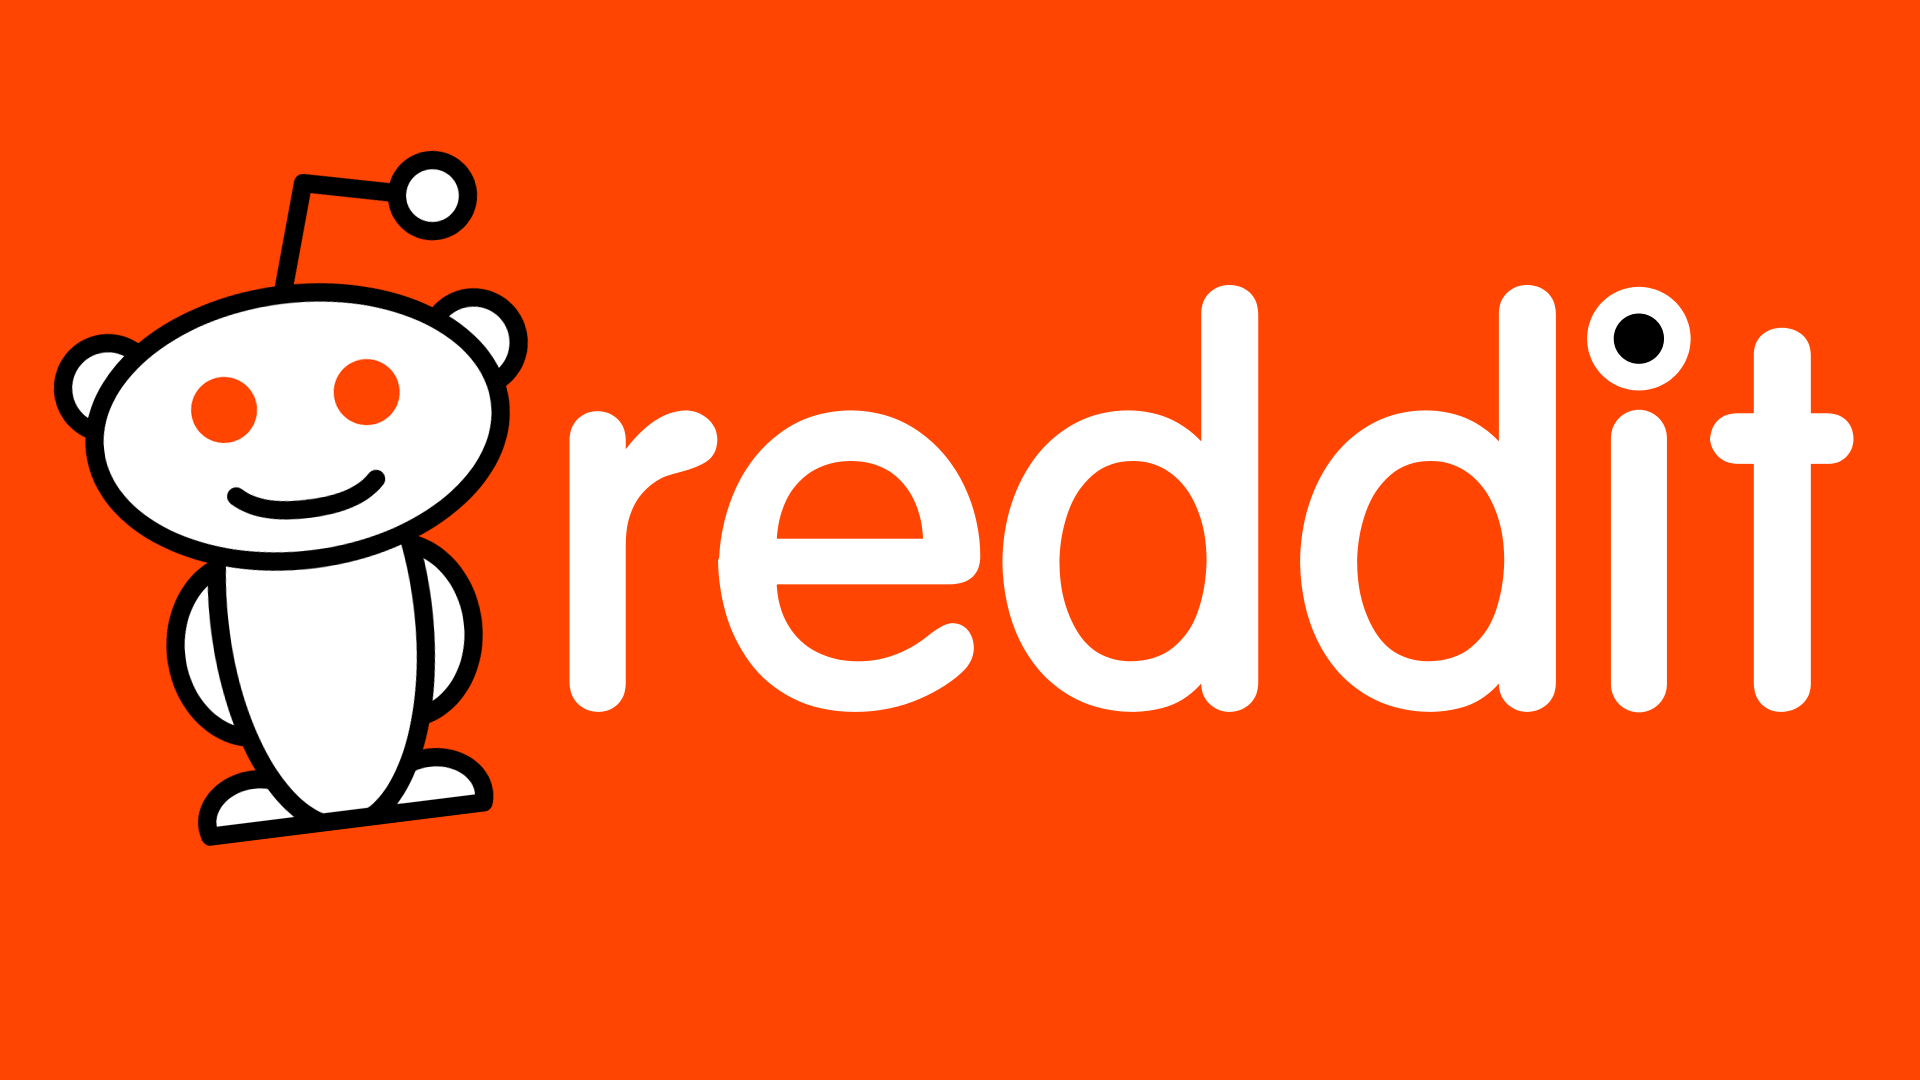 Bitcoin and stock market speculative buying likely driven by Reddit communities